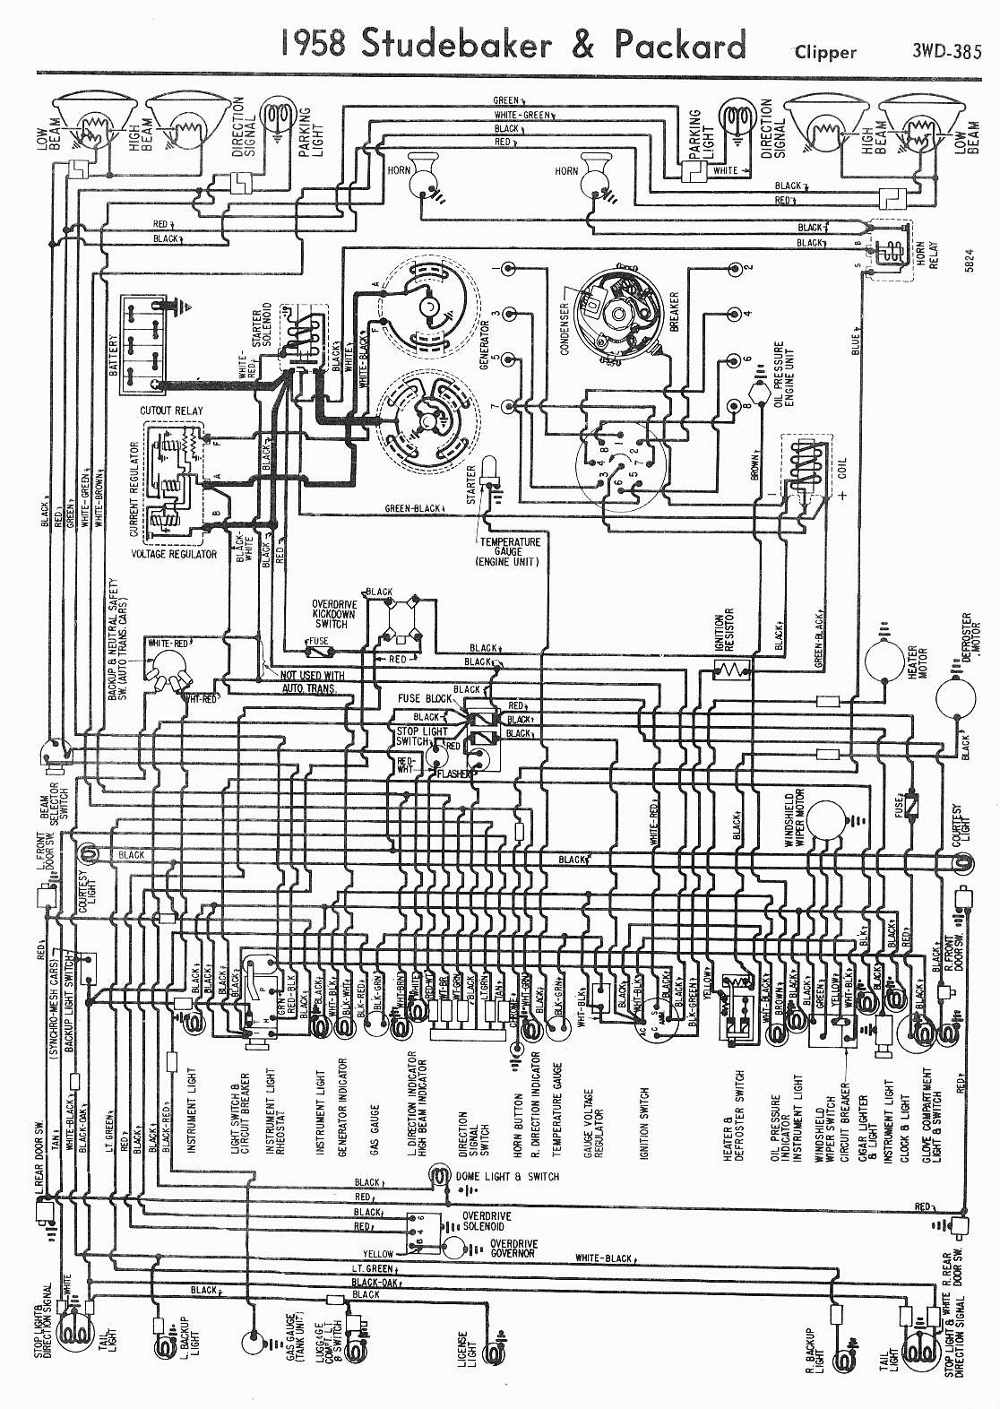 hight resolution of 1948 packard wiring diagram simple wiring diagrams 1943 packard 1949 packard wiring diagram